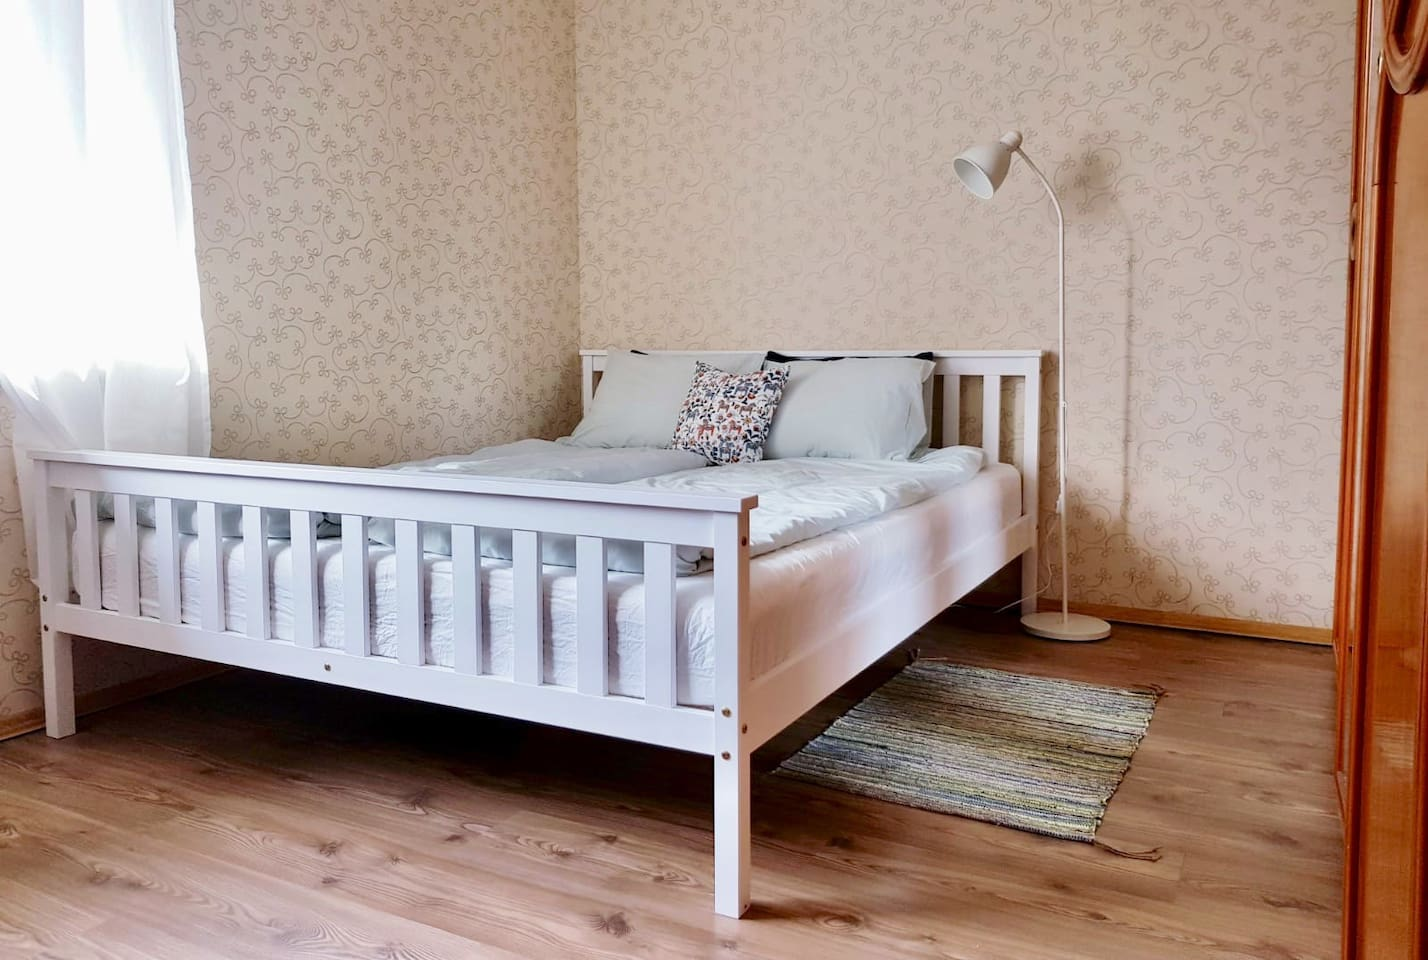 Your room with a brand new queen bed and mattress 160x200.